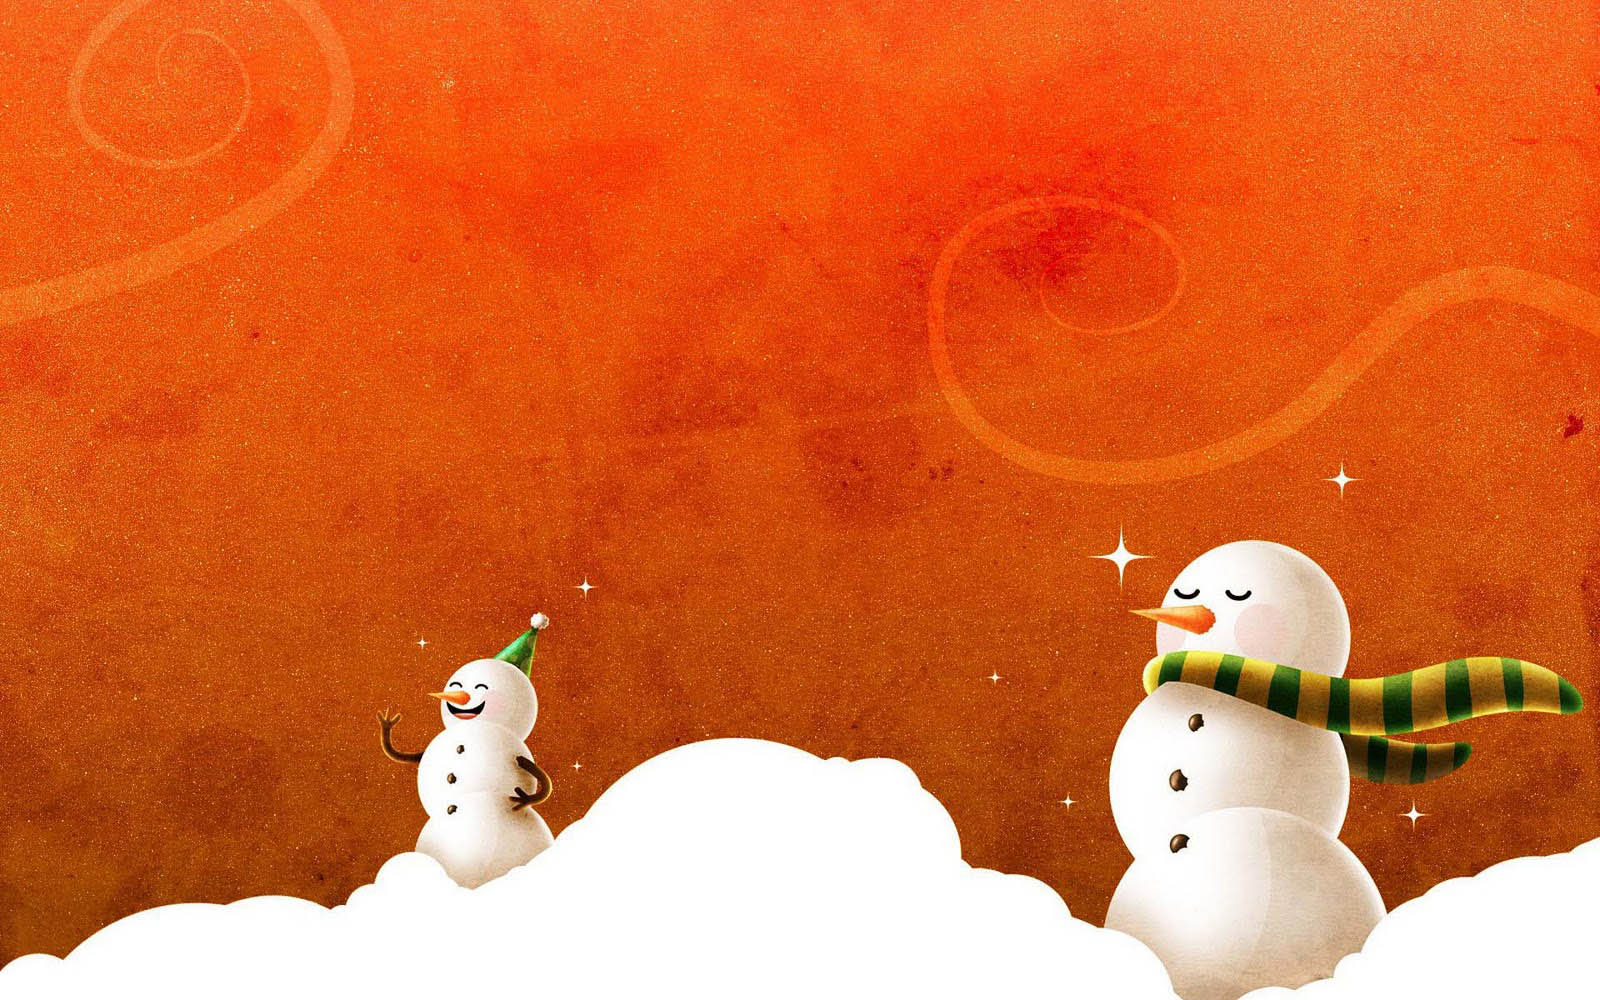 Snowman backgrounds for desktop images amp pictures becuo